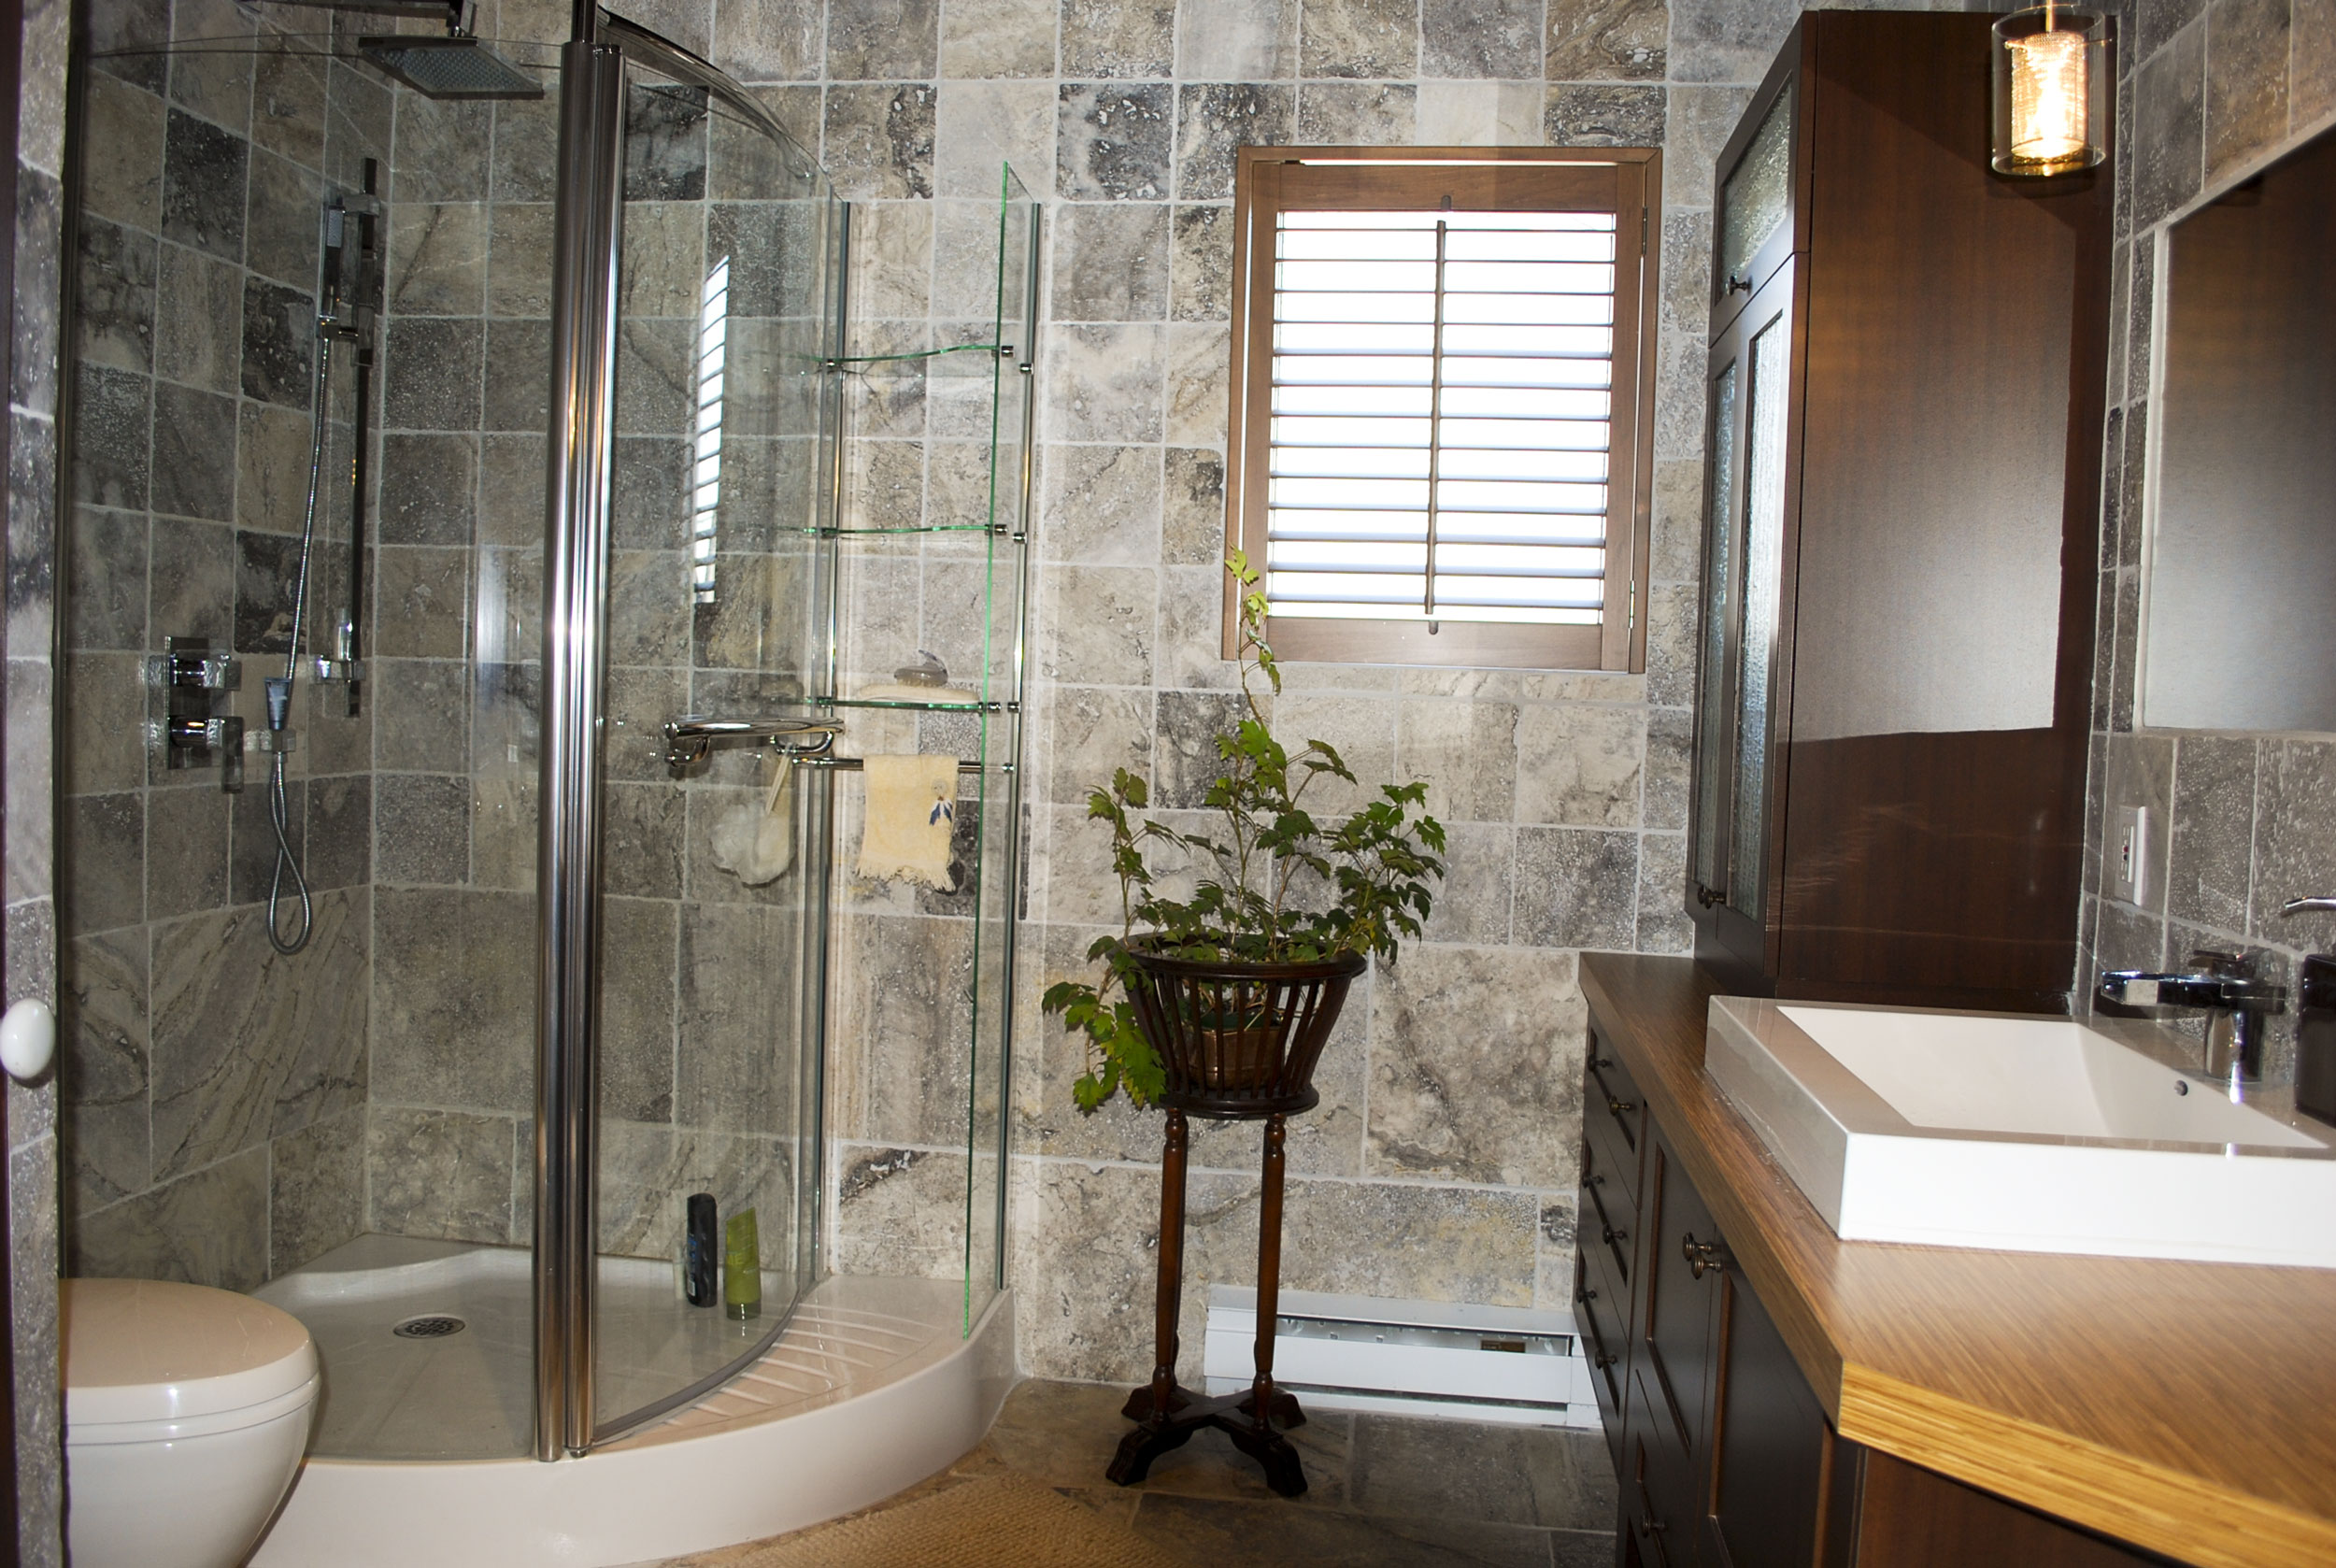 Design interieur salle de bain st jerome 4 laurentides for Dec design interieur